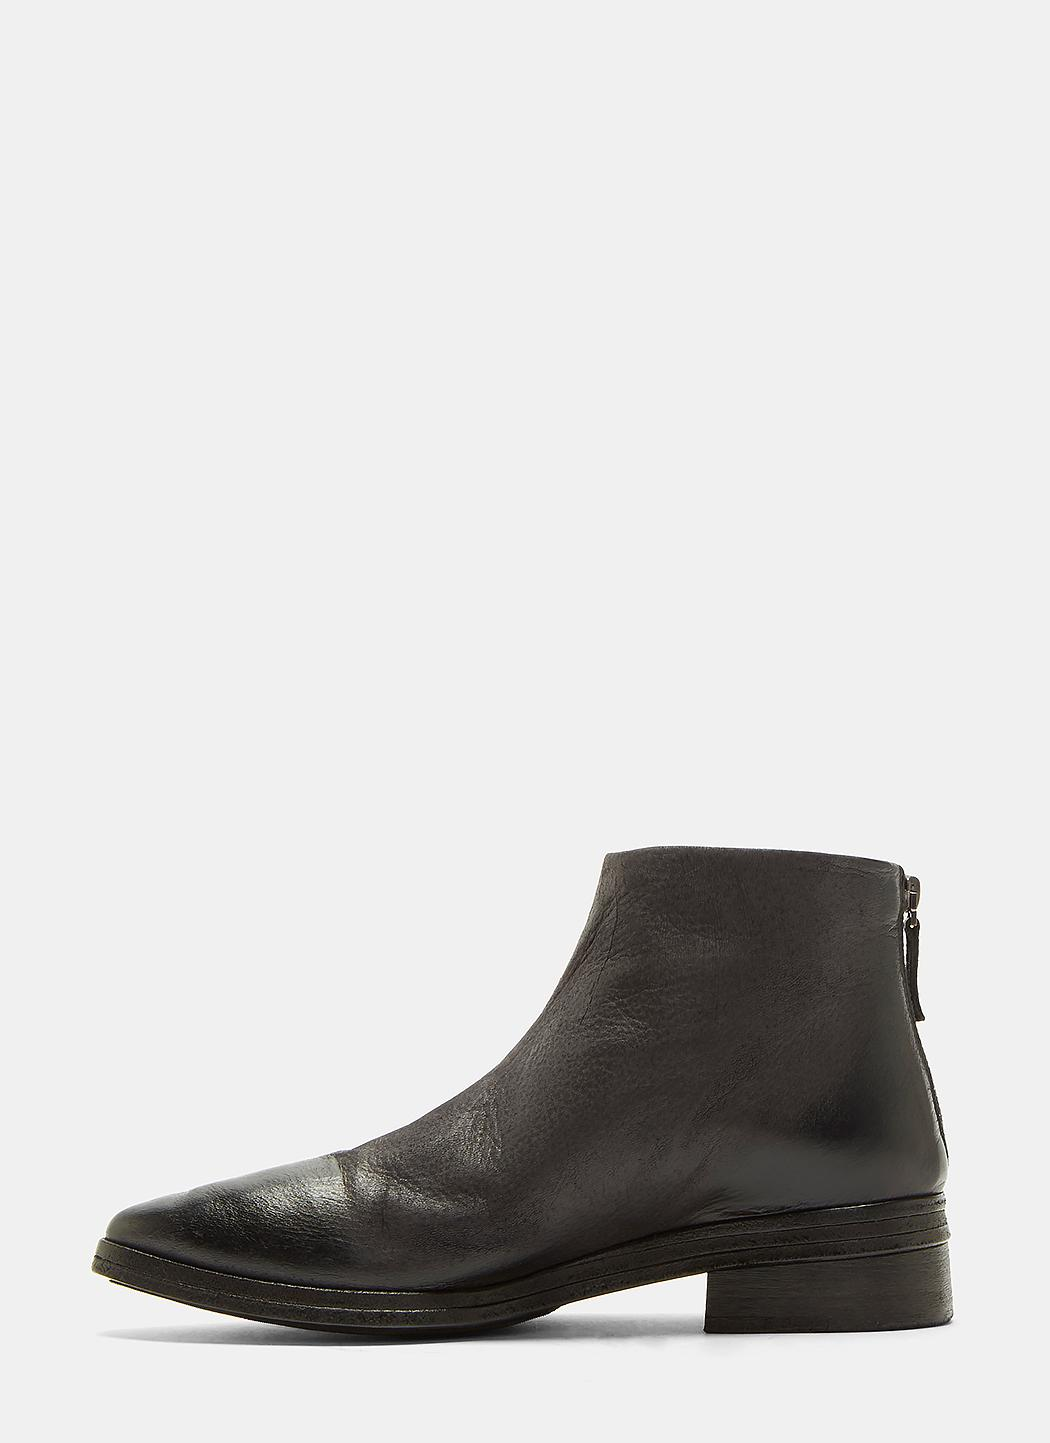 Marsèll Listone Neve Leather Ankle Boots In Black